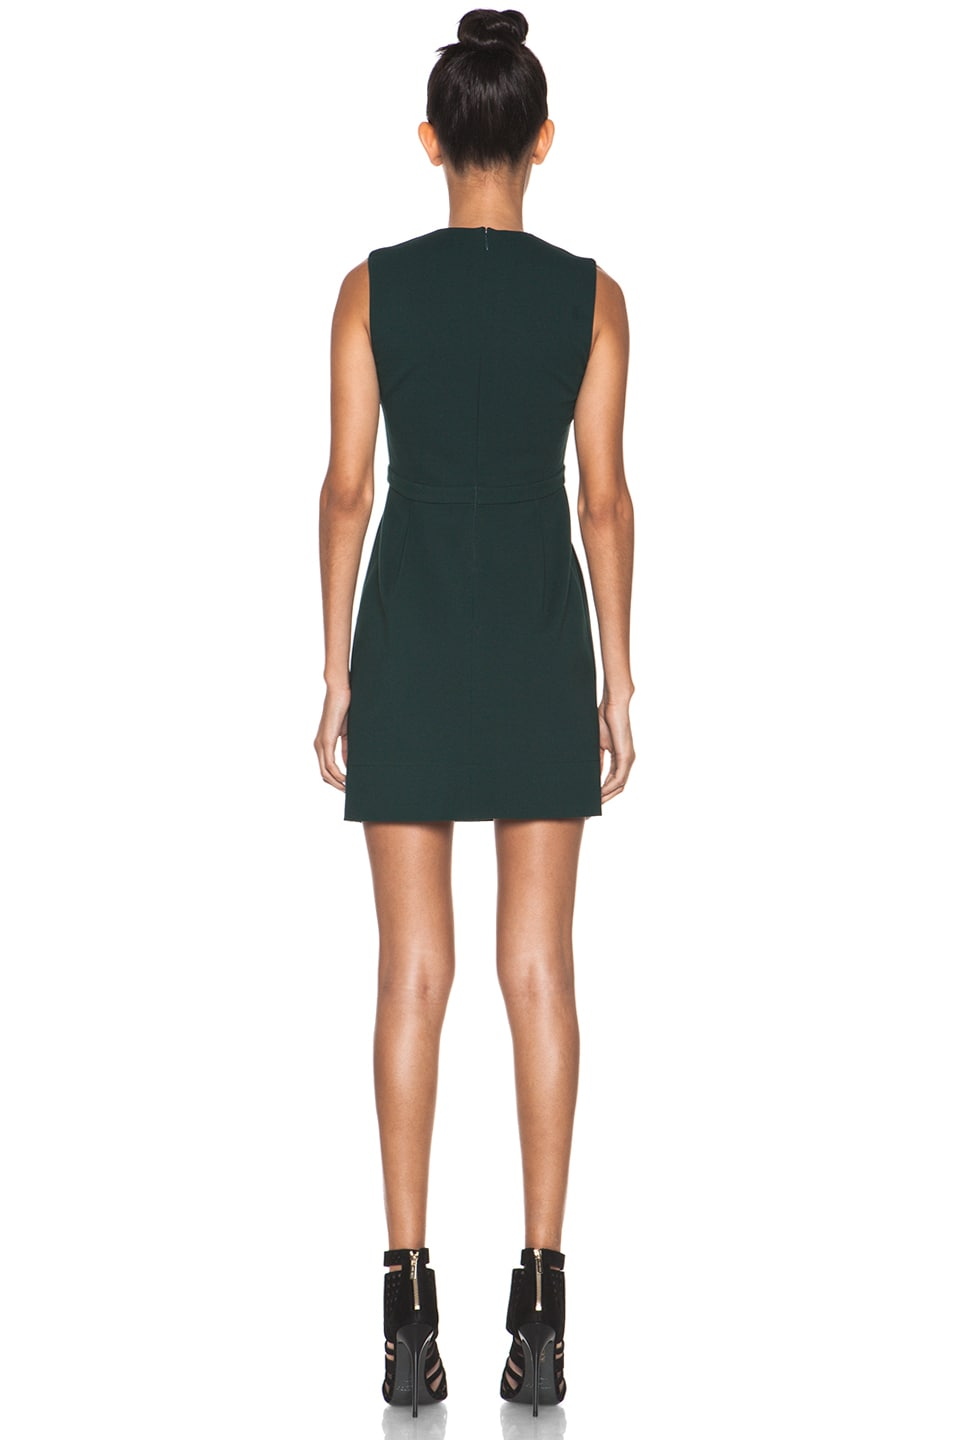 Image 4 of Diane von Furstenberg Savri Dress in Mallard Green